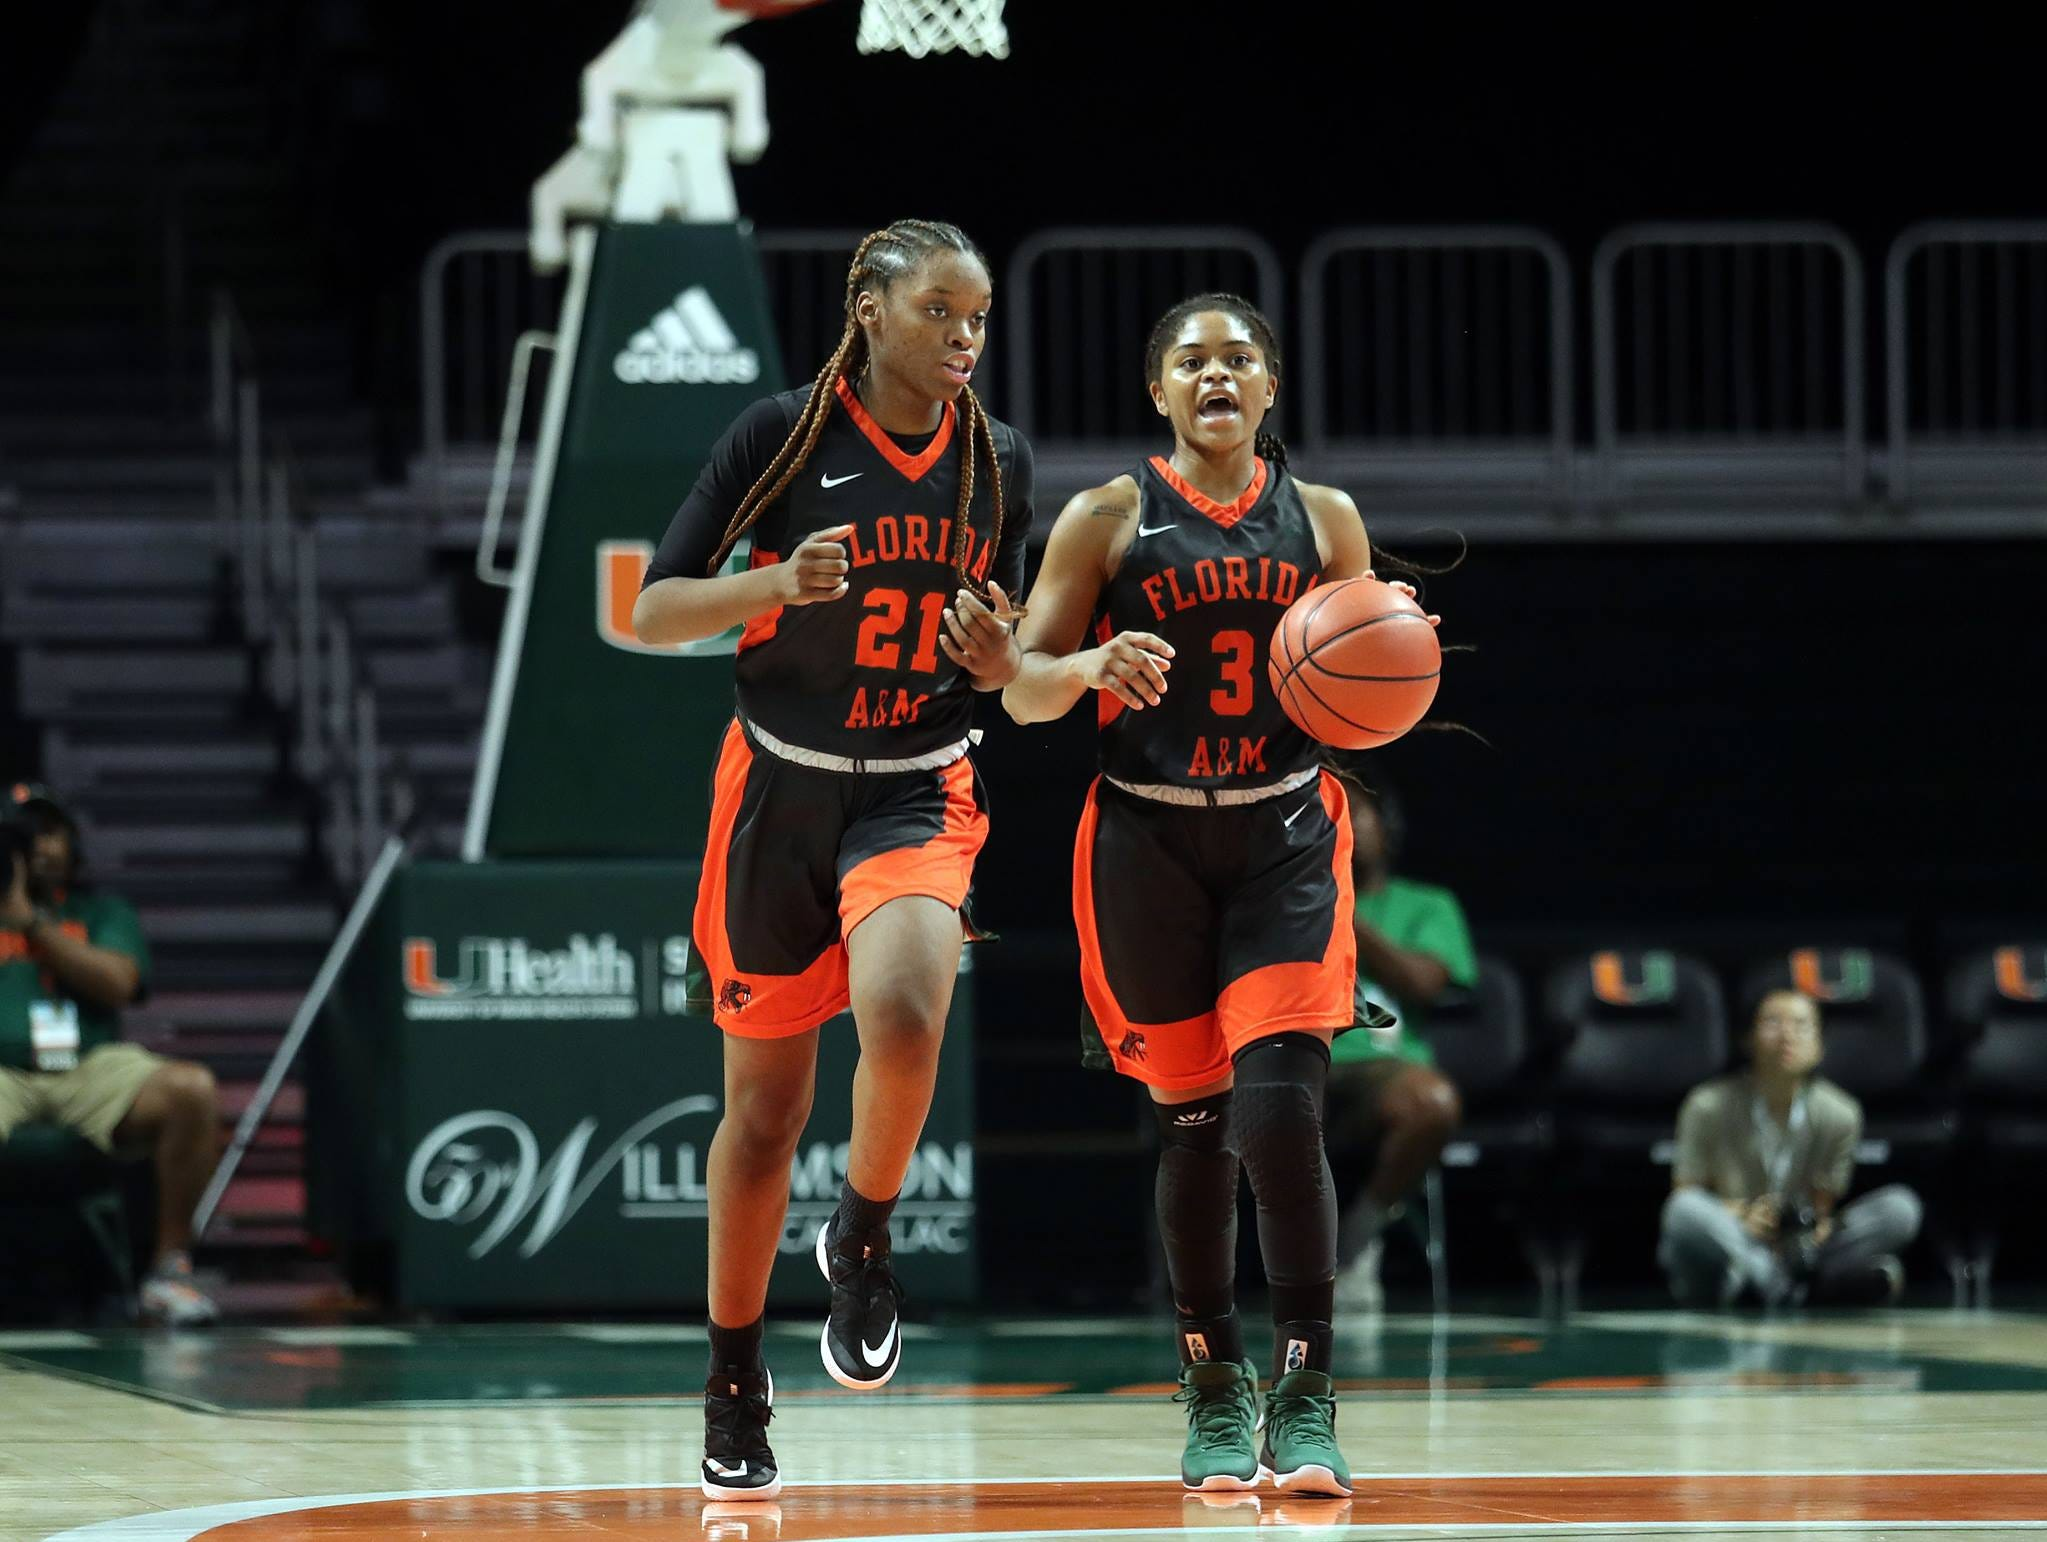 FAMU point guard Candice Williams (3) brings the ball up court alongside Keziah Dilworth in the Miami Holiday Classic.